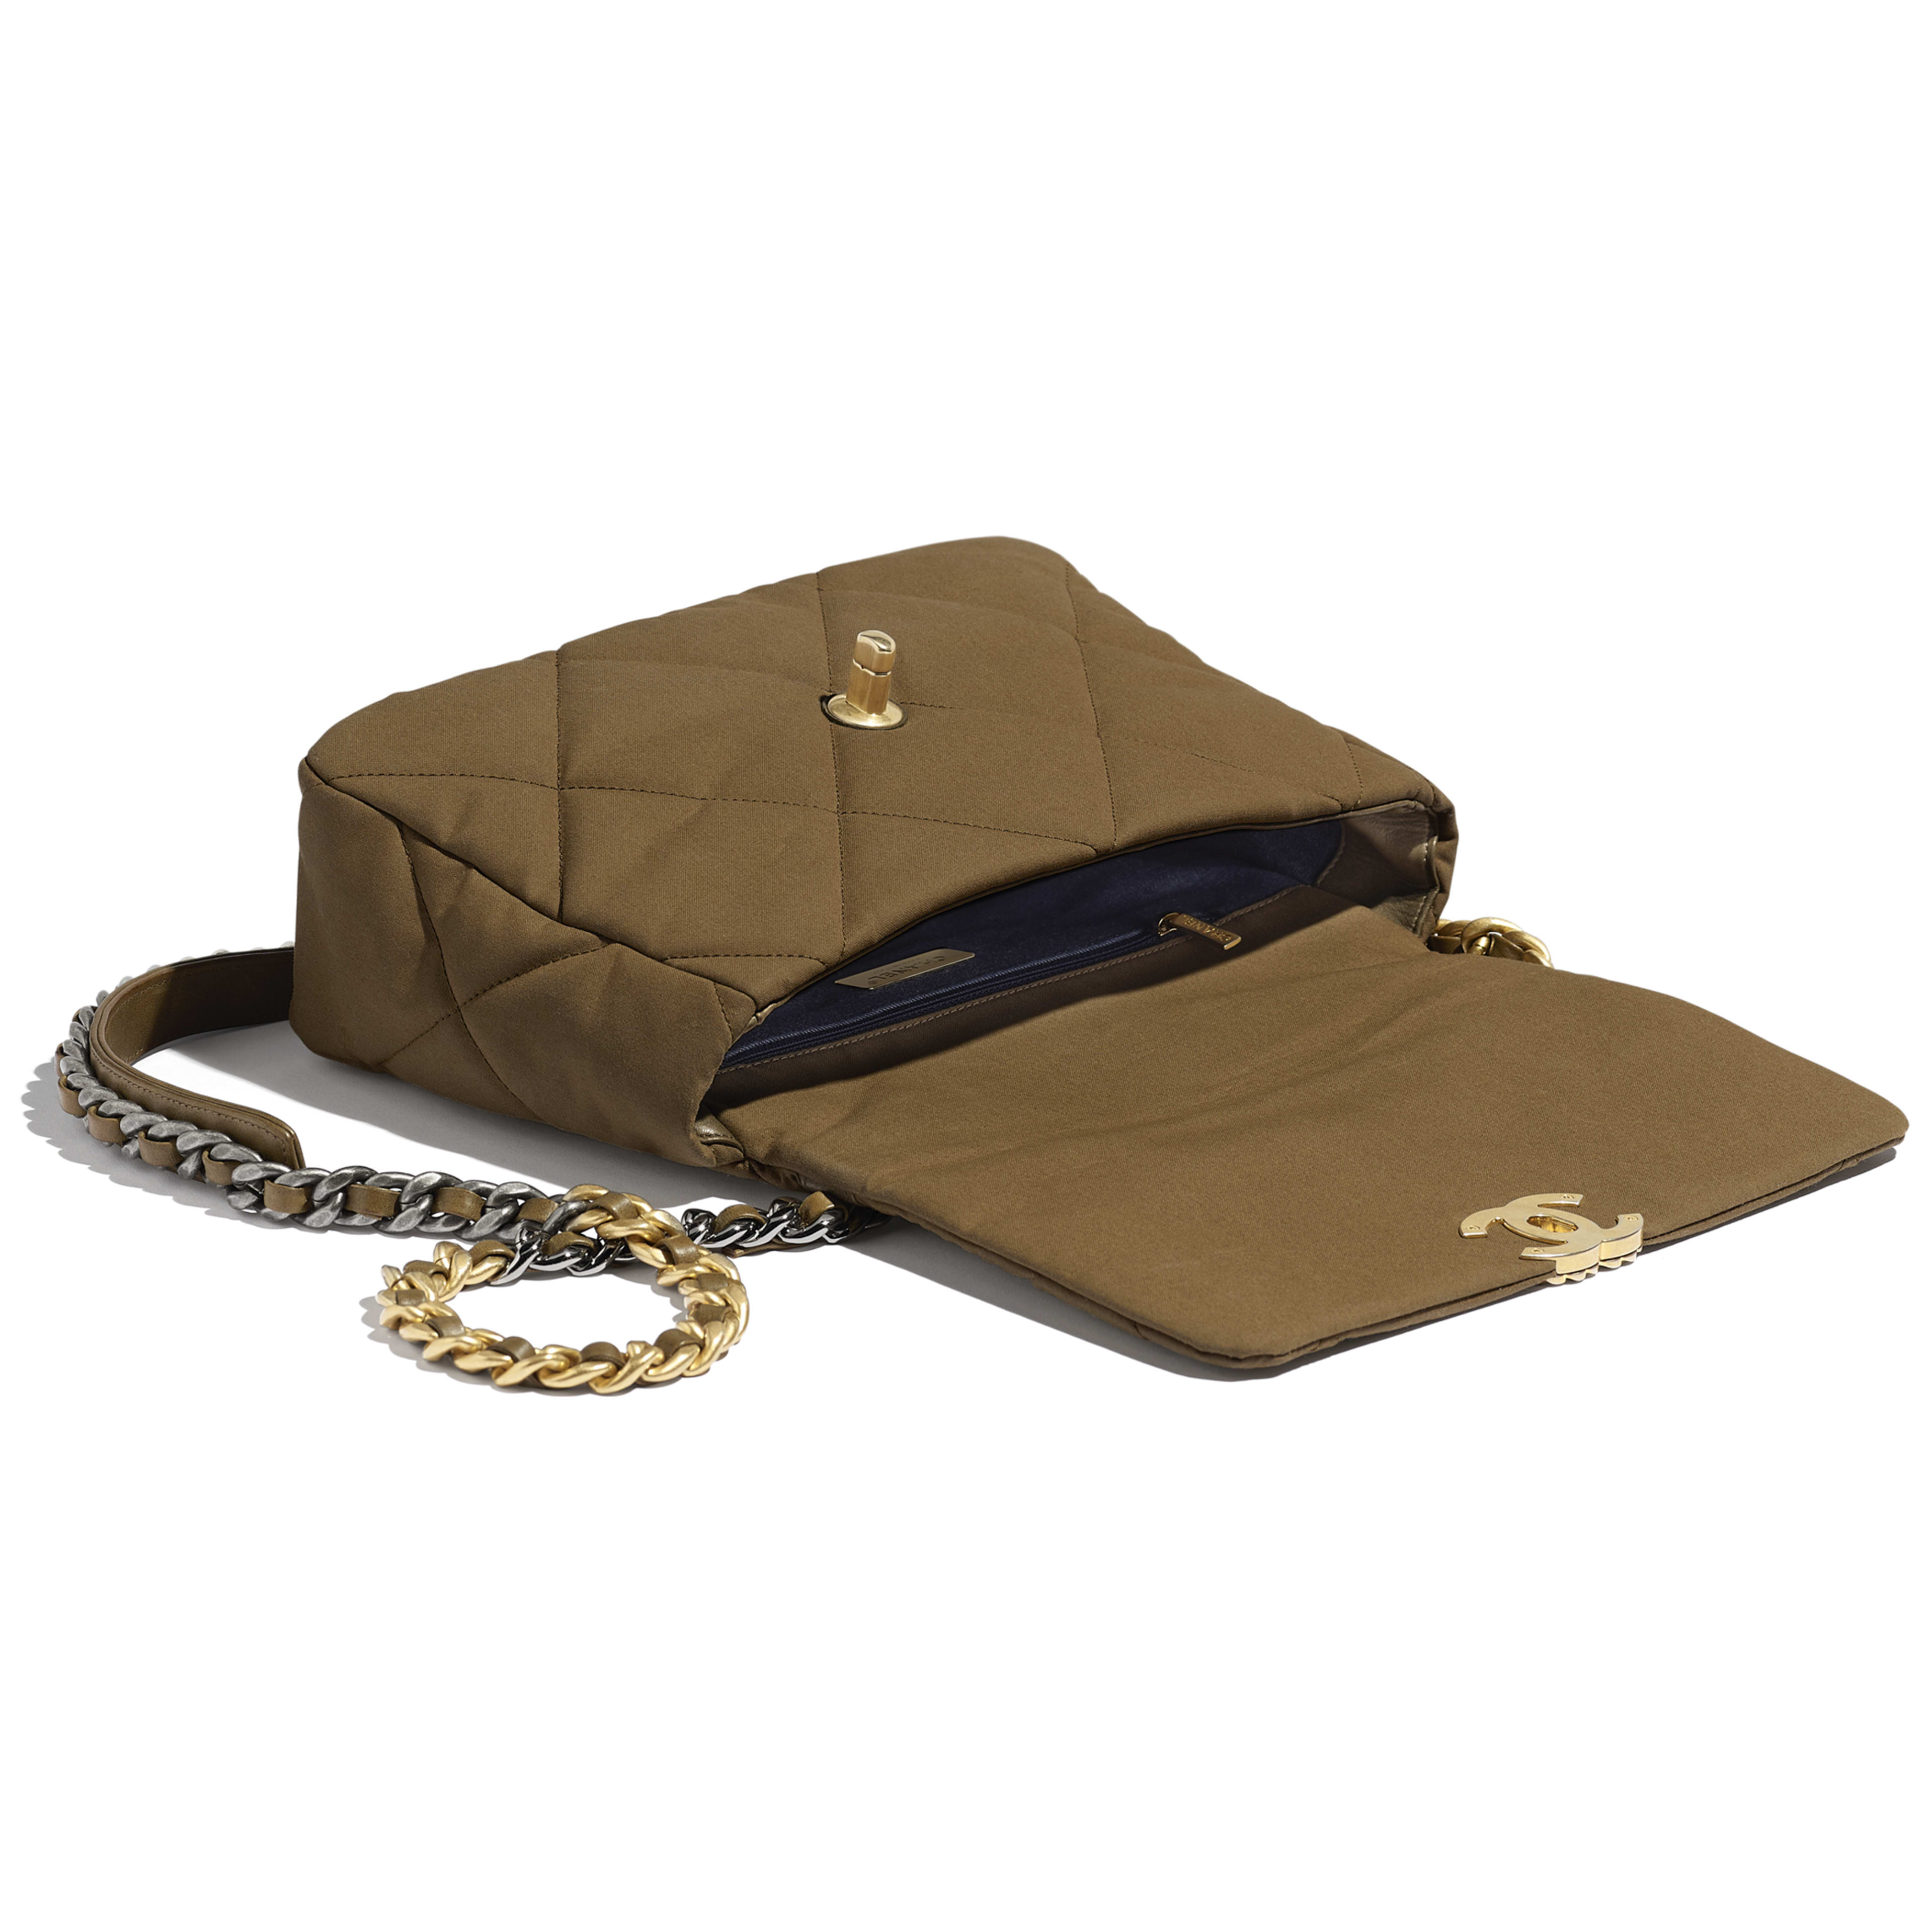 CHANEL 19 Large Flap Bag - Bronze - Cotton Canvas, Calfskin, Gold-Tone, Silver-Tone & Ruthenium-Finish Metal - Other view - see full sized version